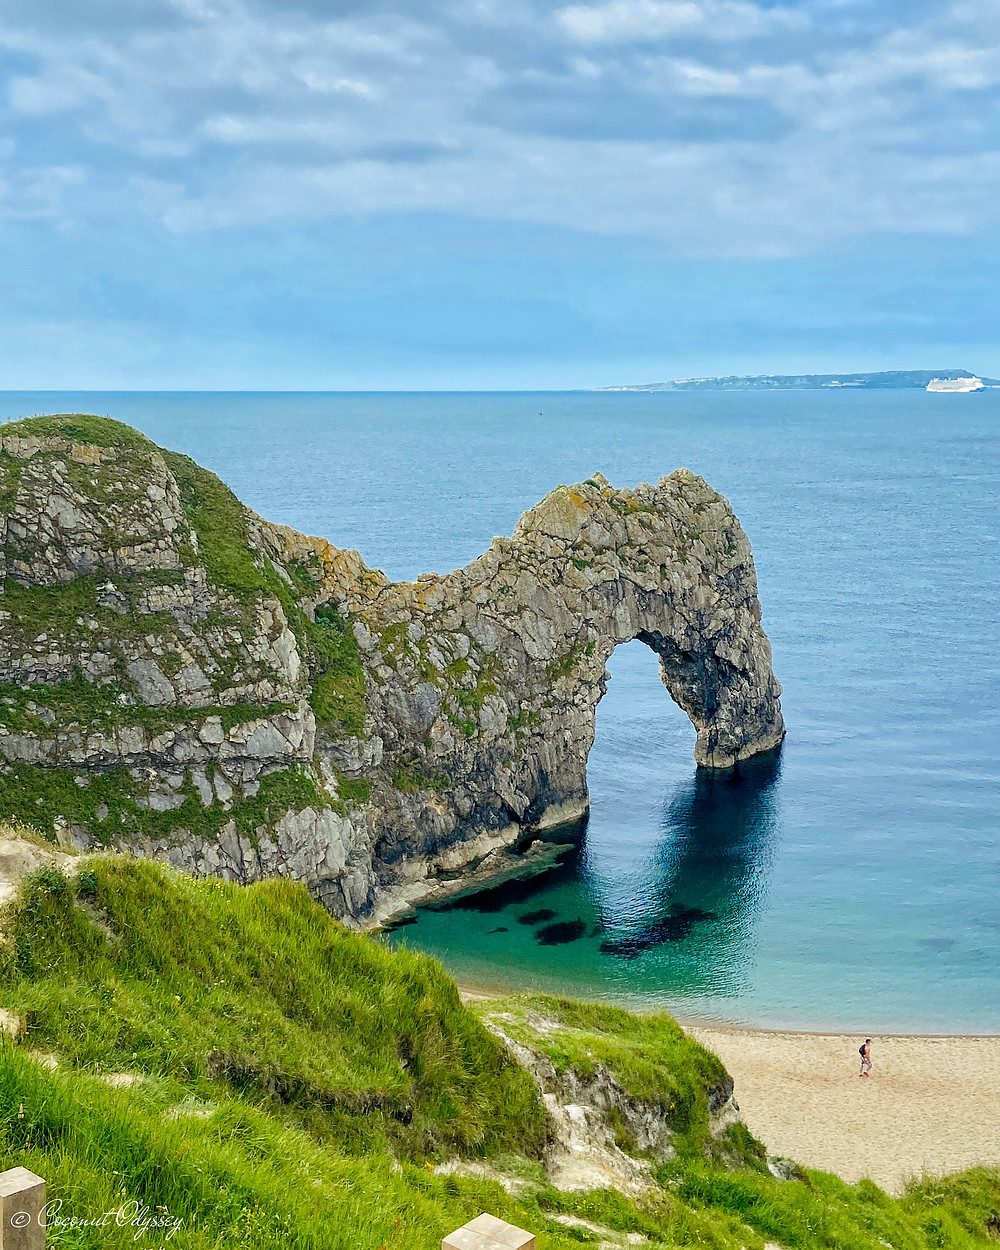 The famous Durdle Door Arch, naturally cut from grey limestone with lush green grassy cliff tops